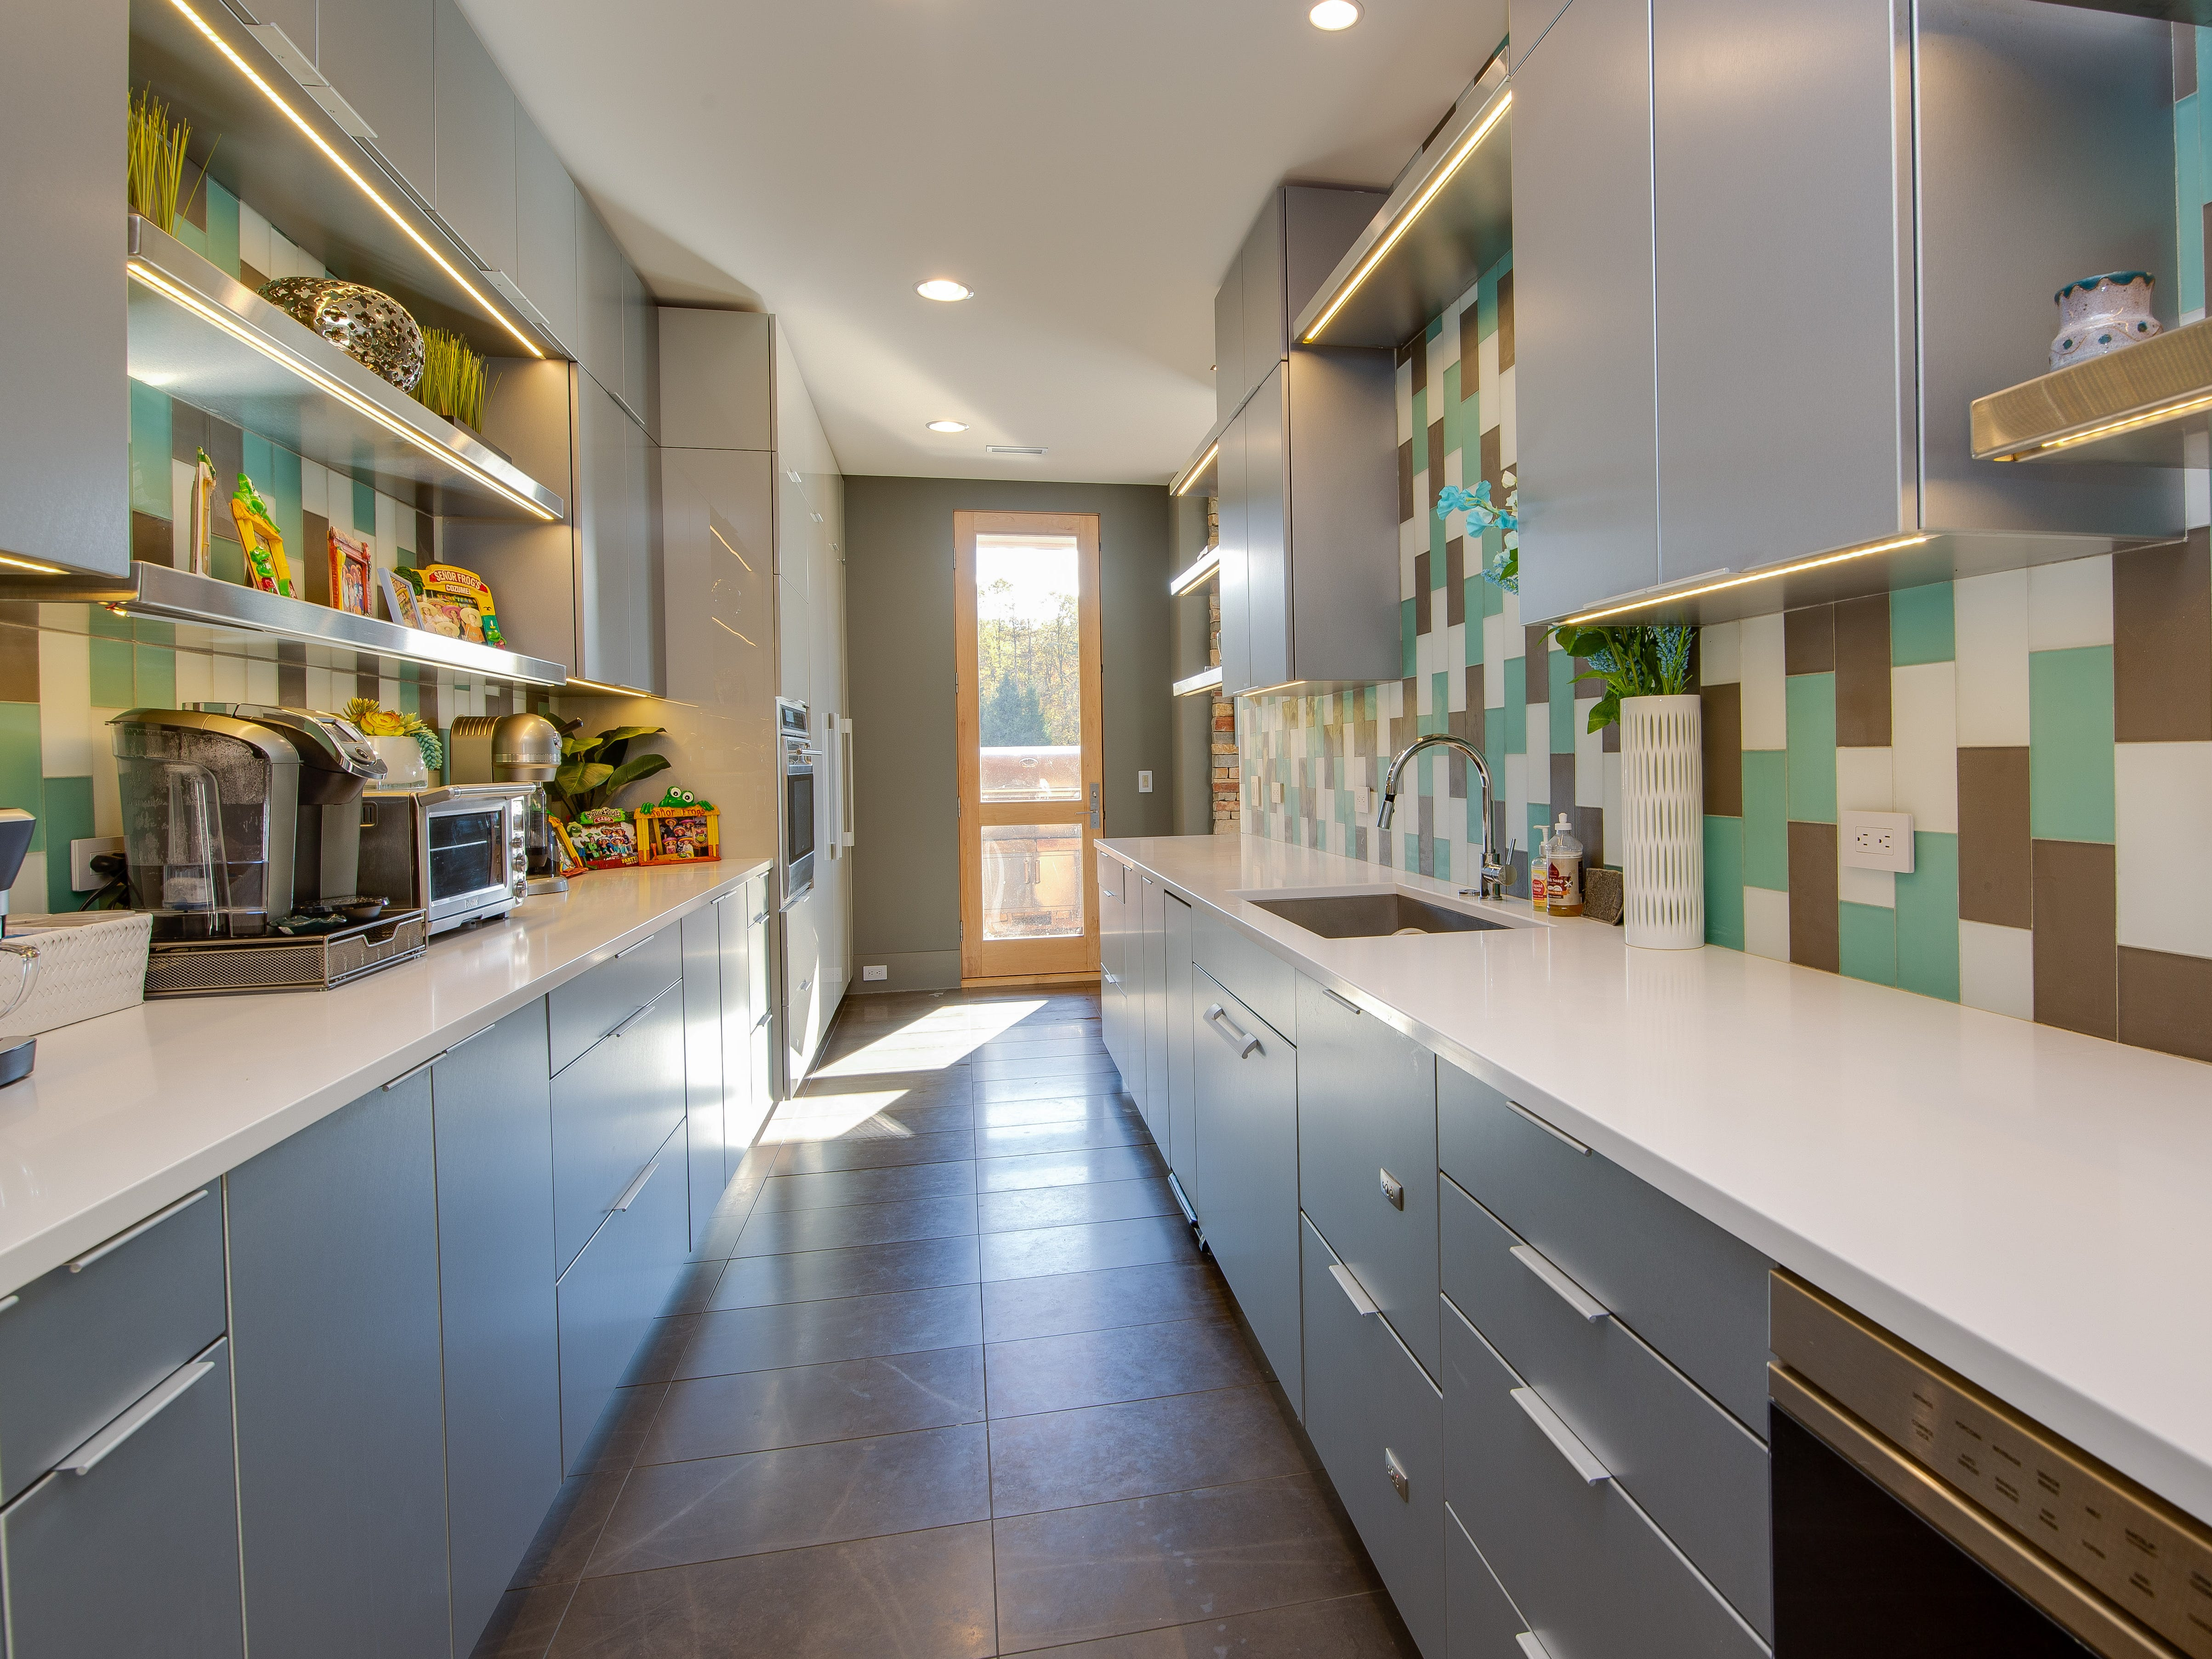 An adjoining prep kitchen with pantry and wine dispenser.